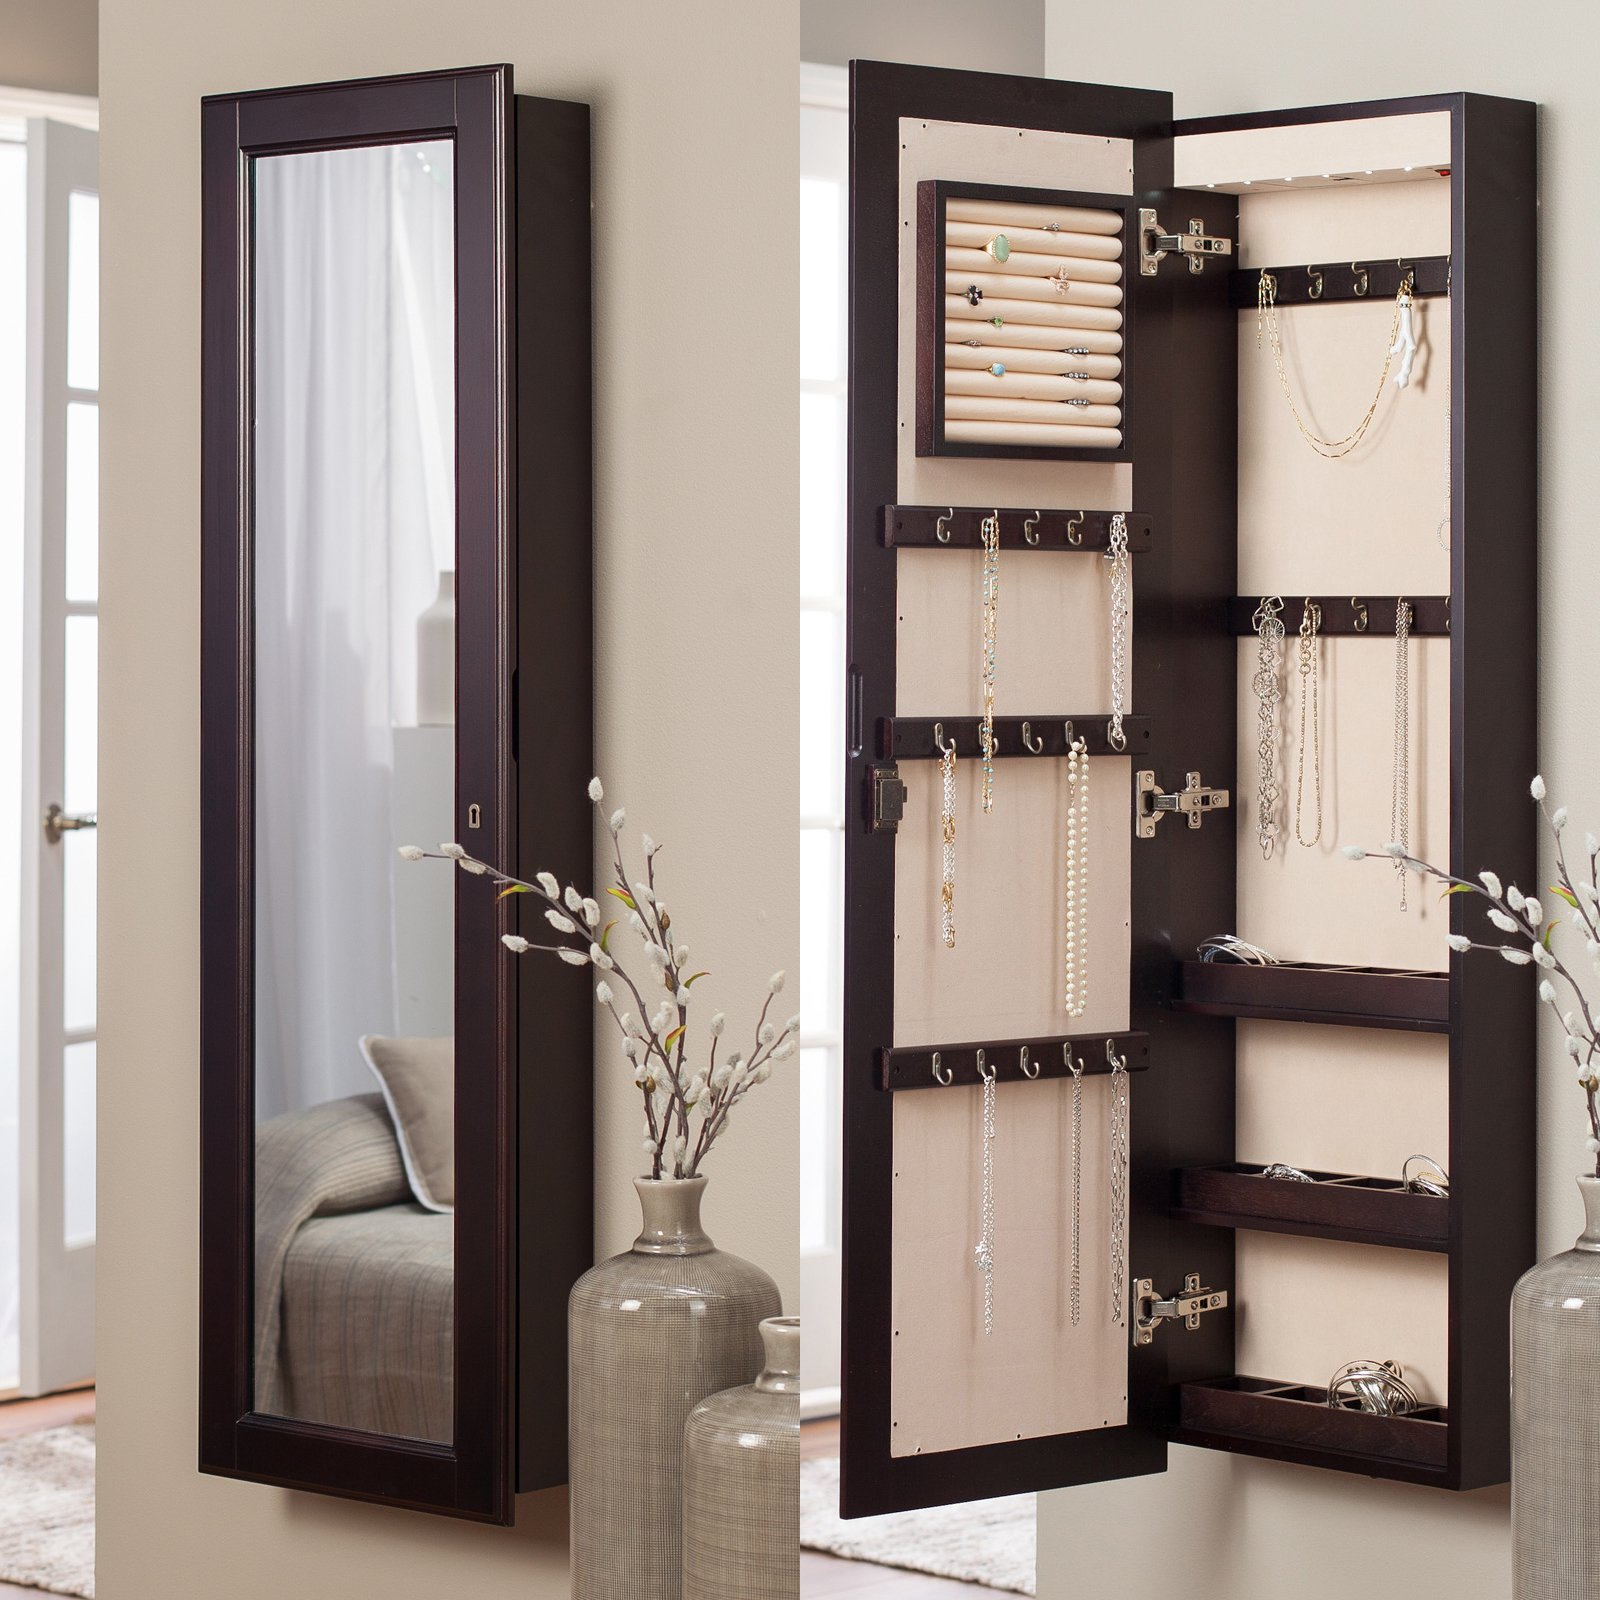 Belham Living Lighted Wall Mount Locking Jewelry Armoire - Espresso - 14.5W x 50H in.